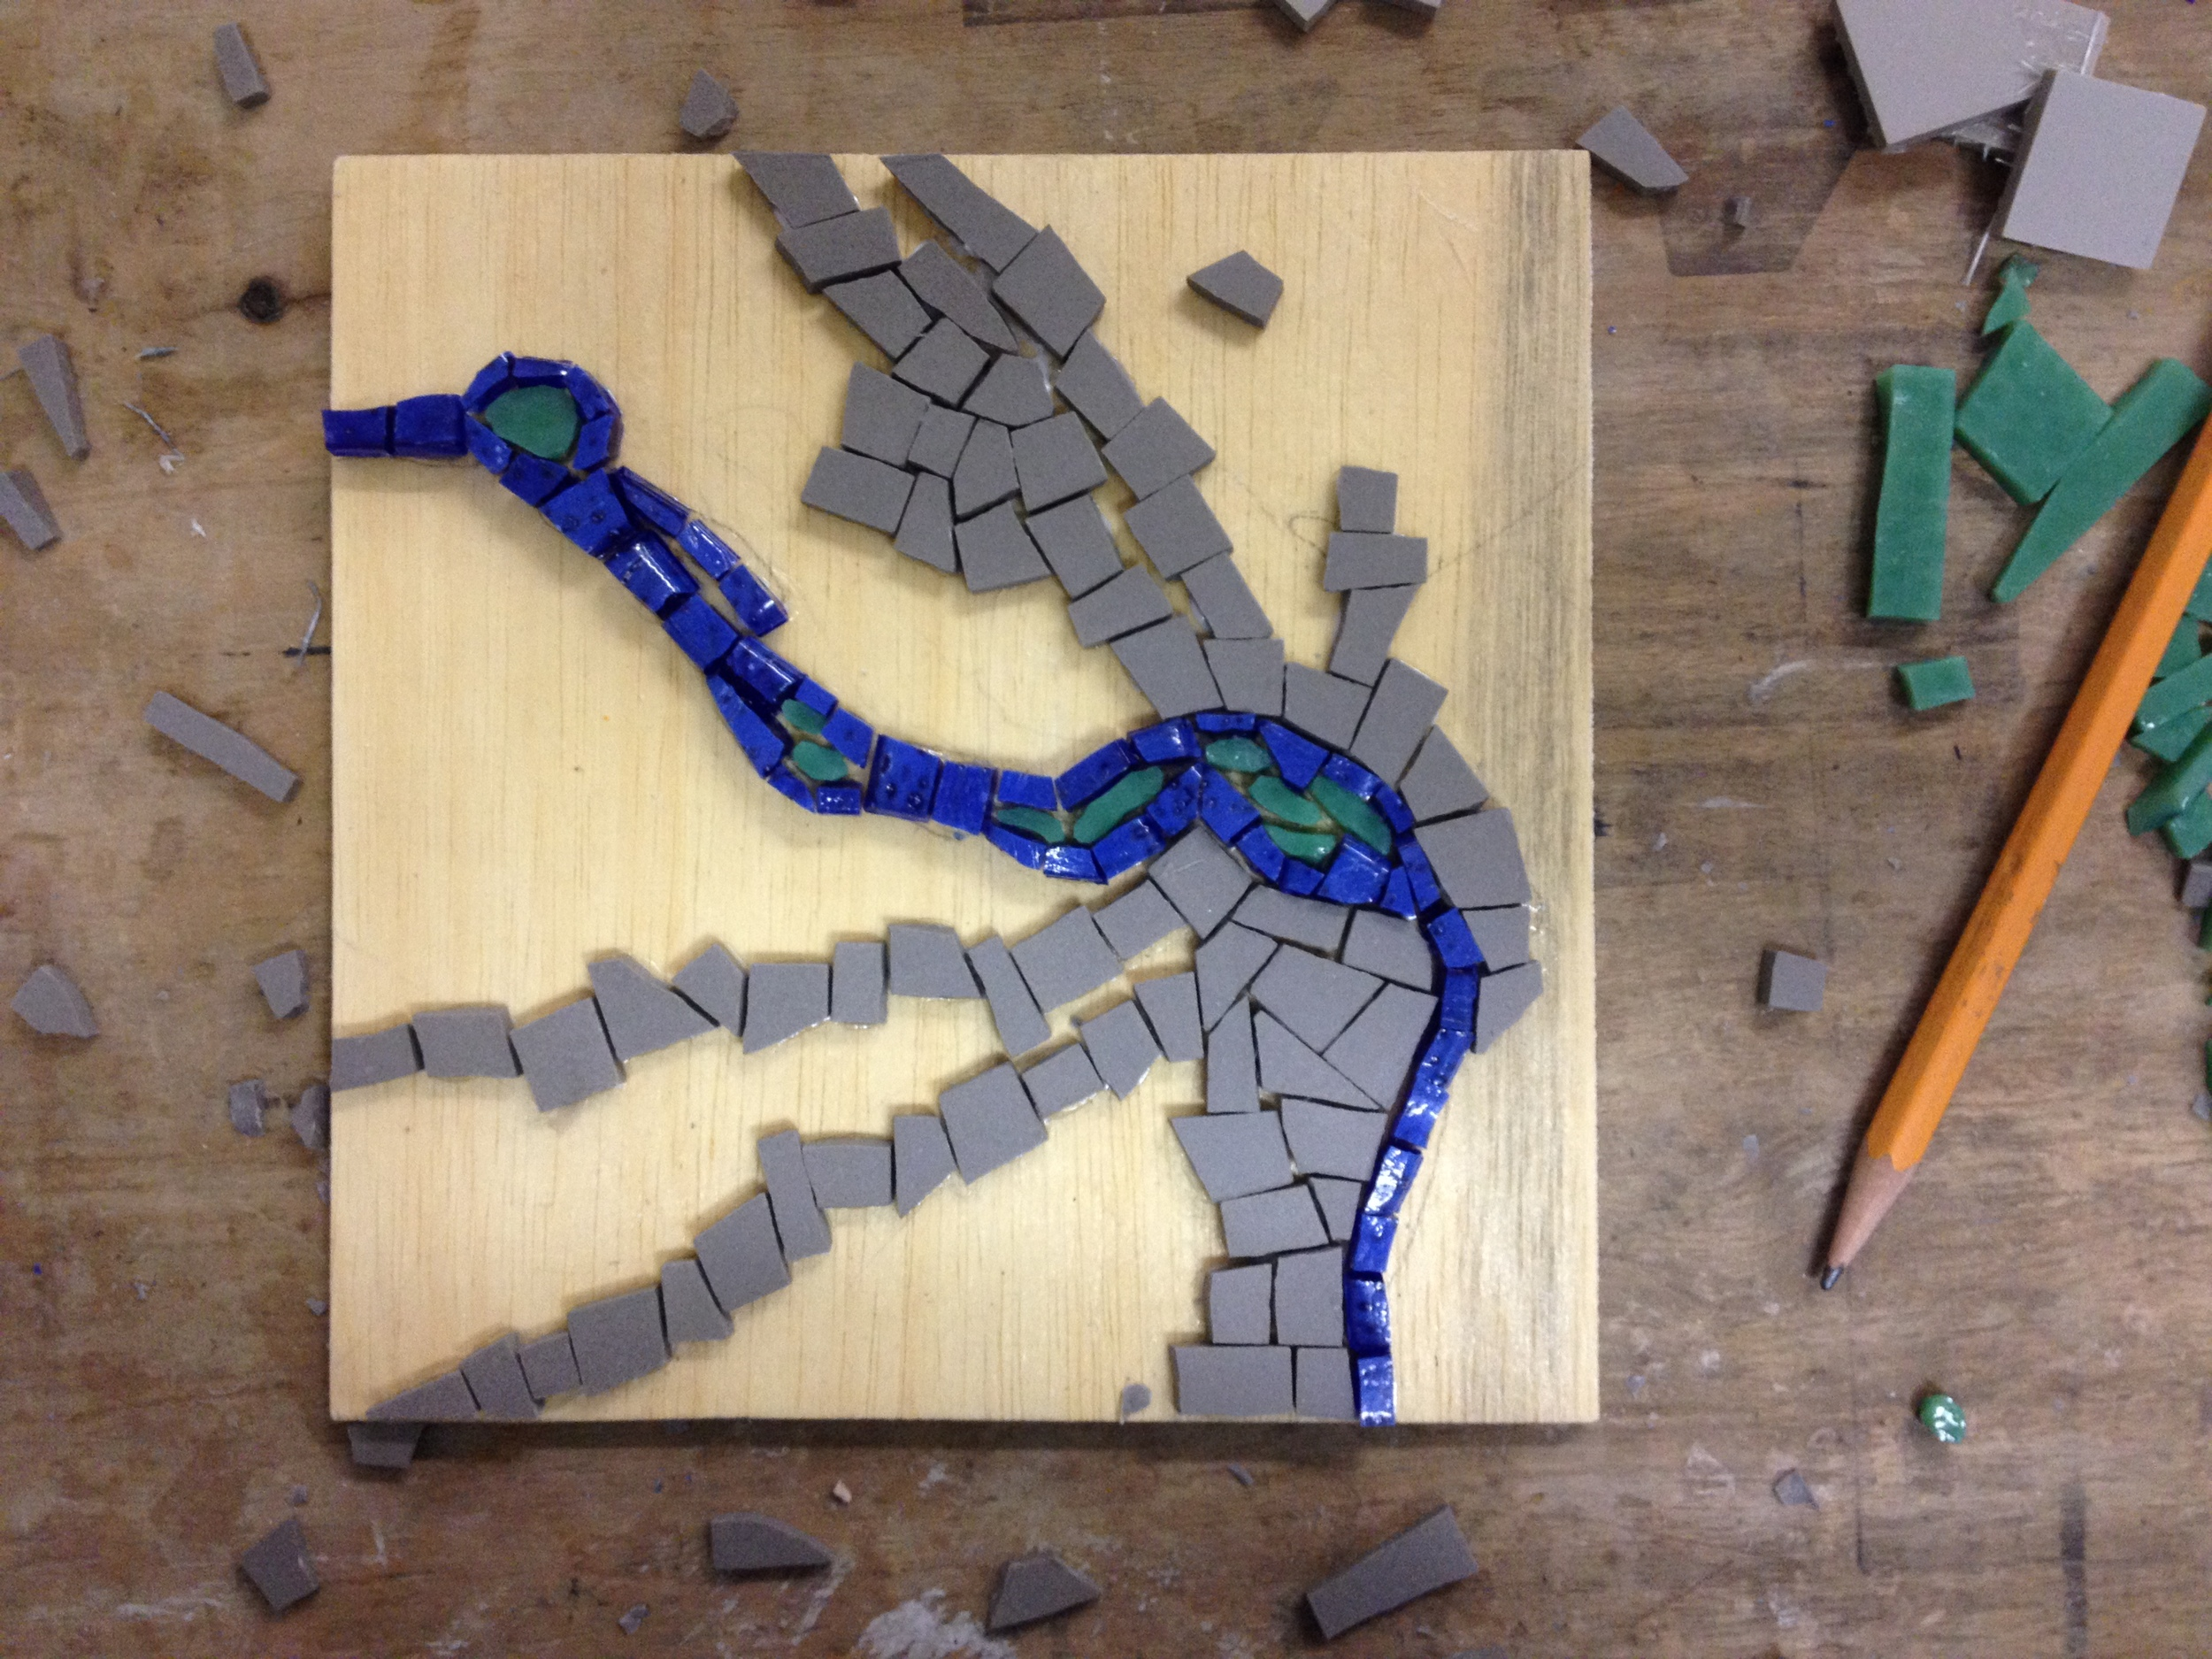 The second piece moves in a bit on the city of Richmond, focussing on the river and human development of the area. This imageis based on a satellite image of the region. The river, downtown islands, and densest areas of development are completed here.